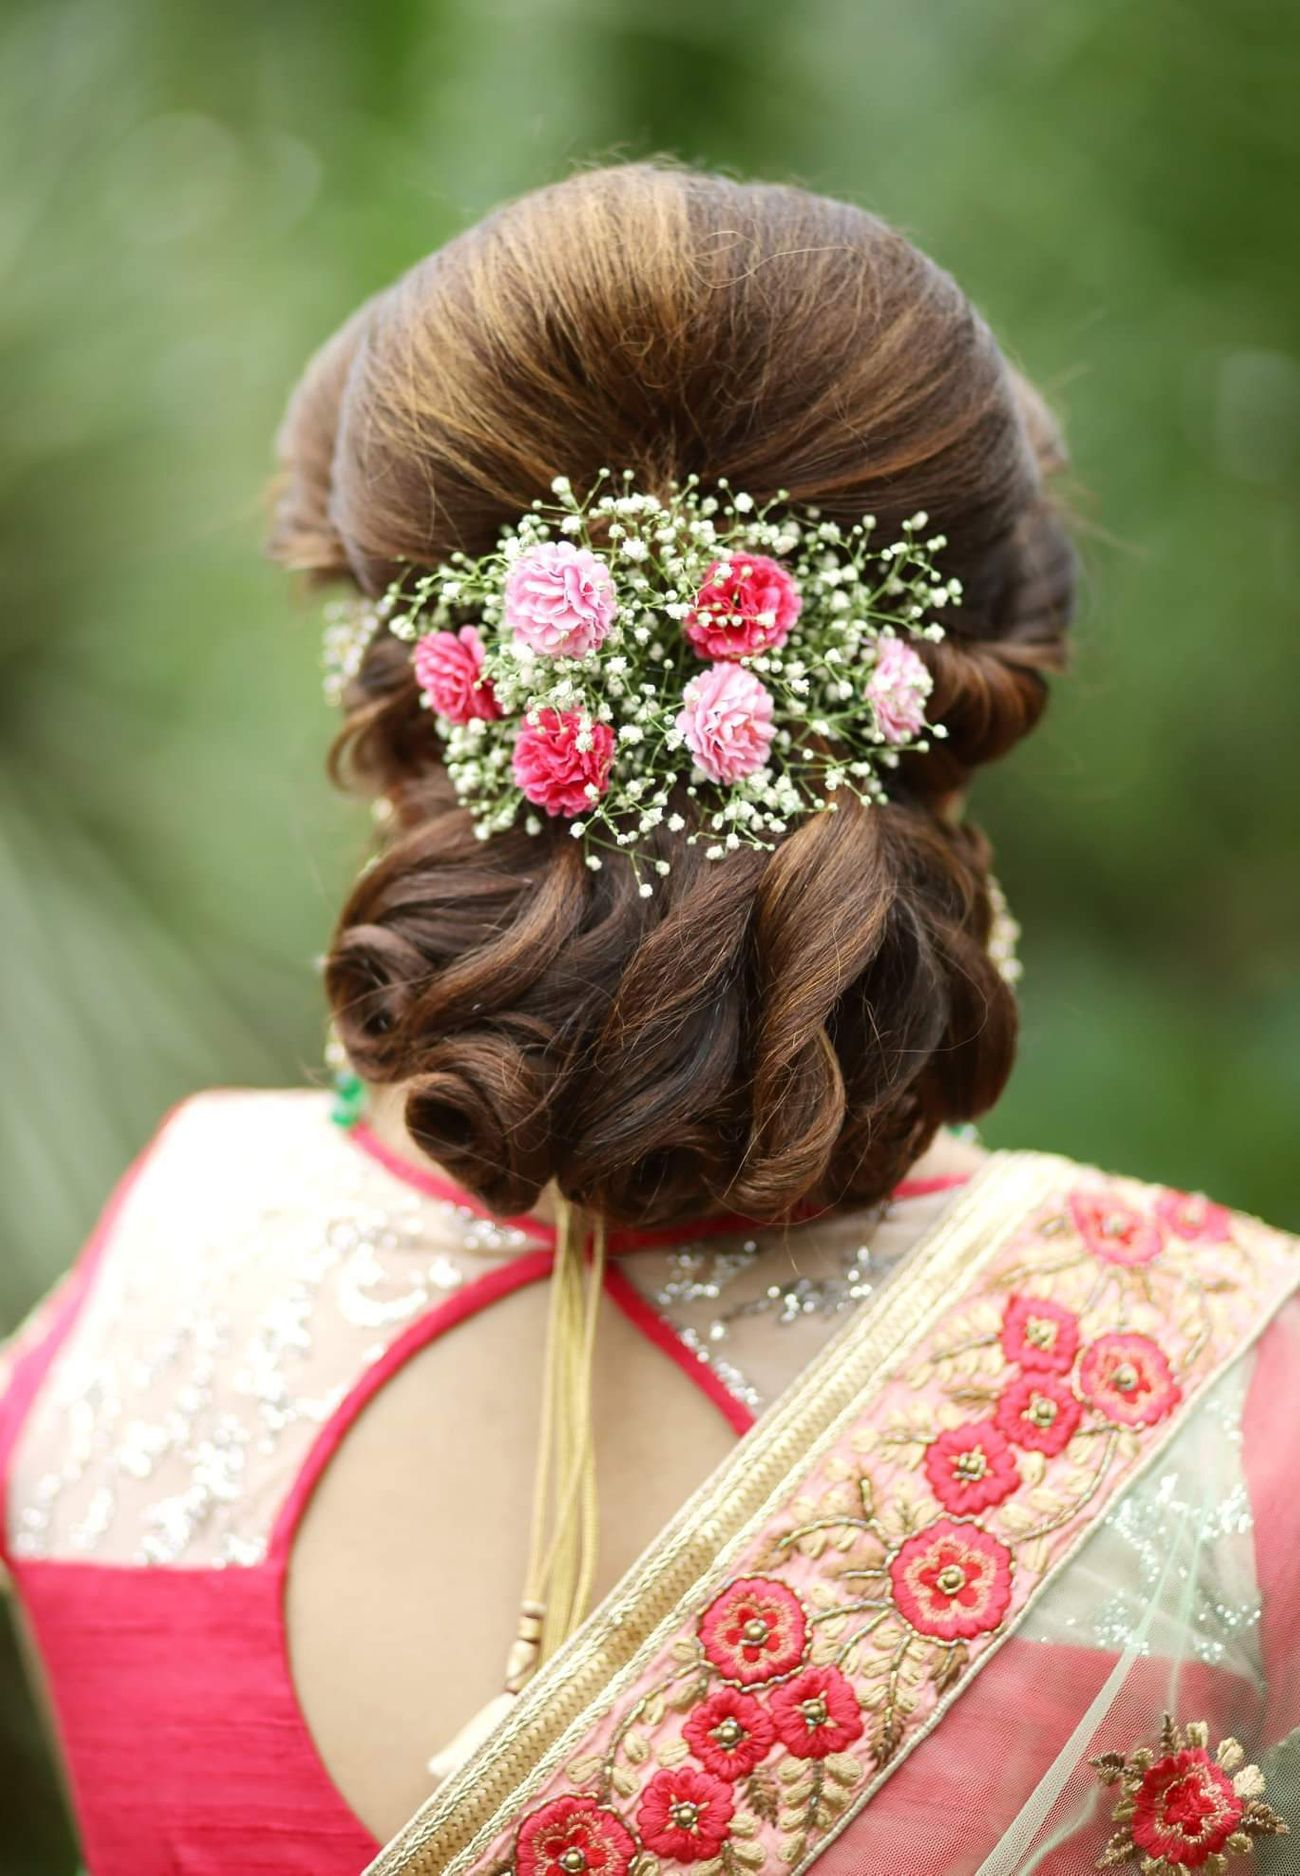 Bridal Bun Hairstyle with Baby breathes and small flowers